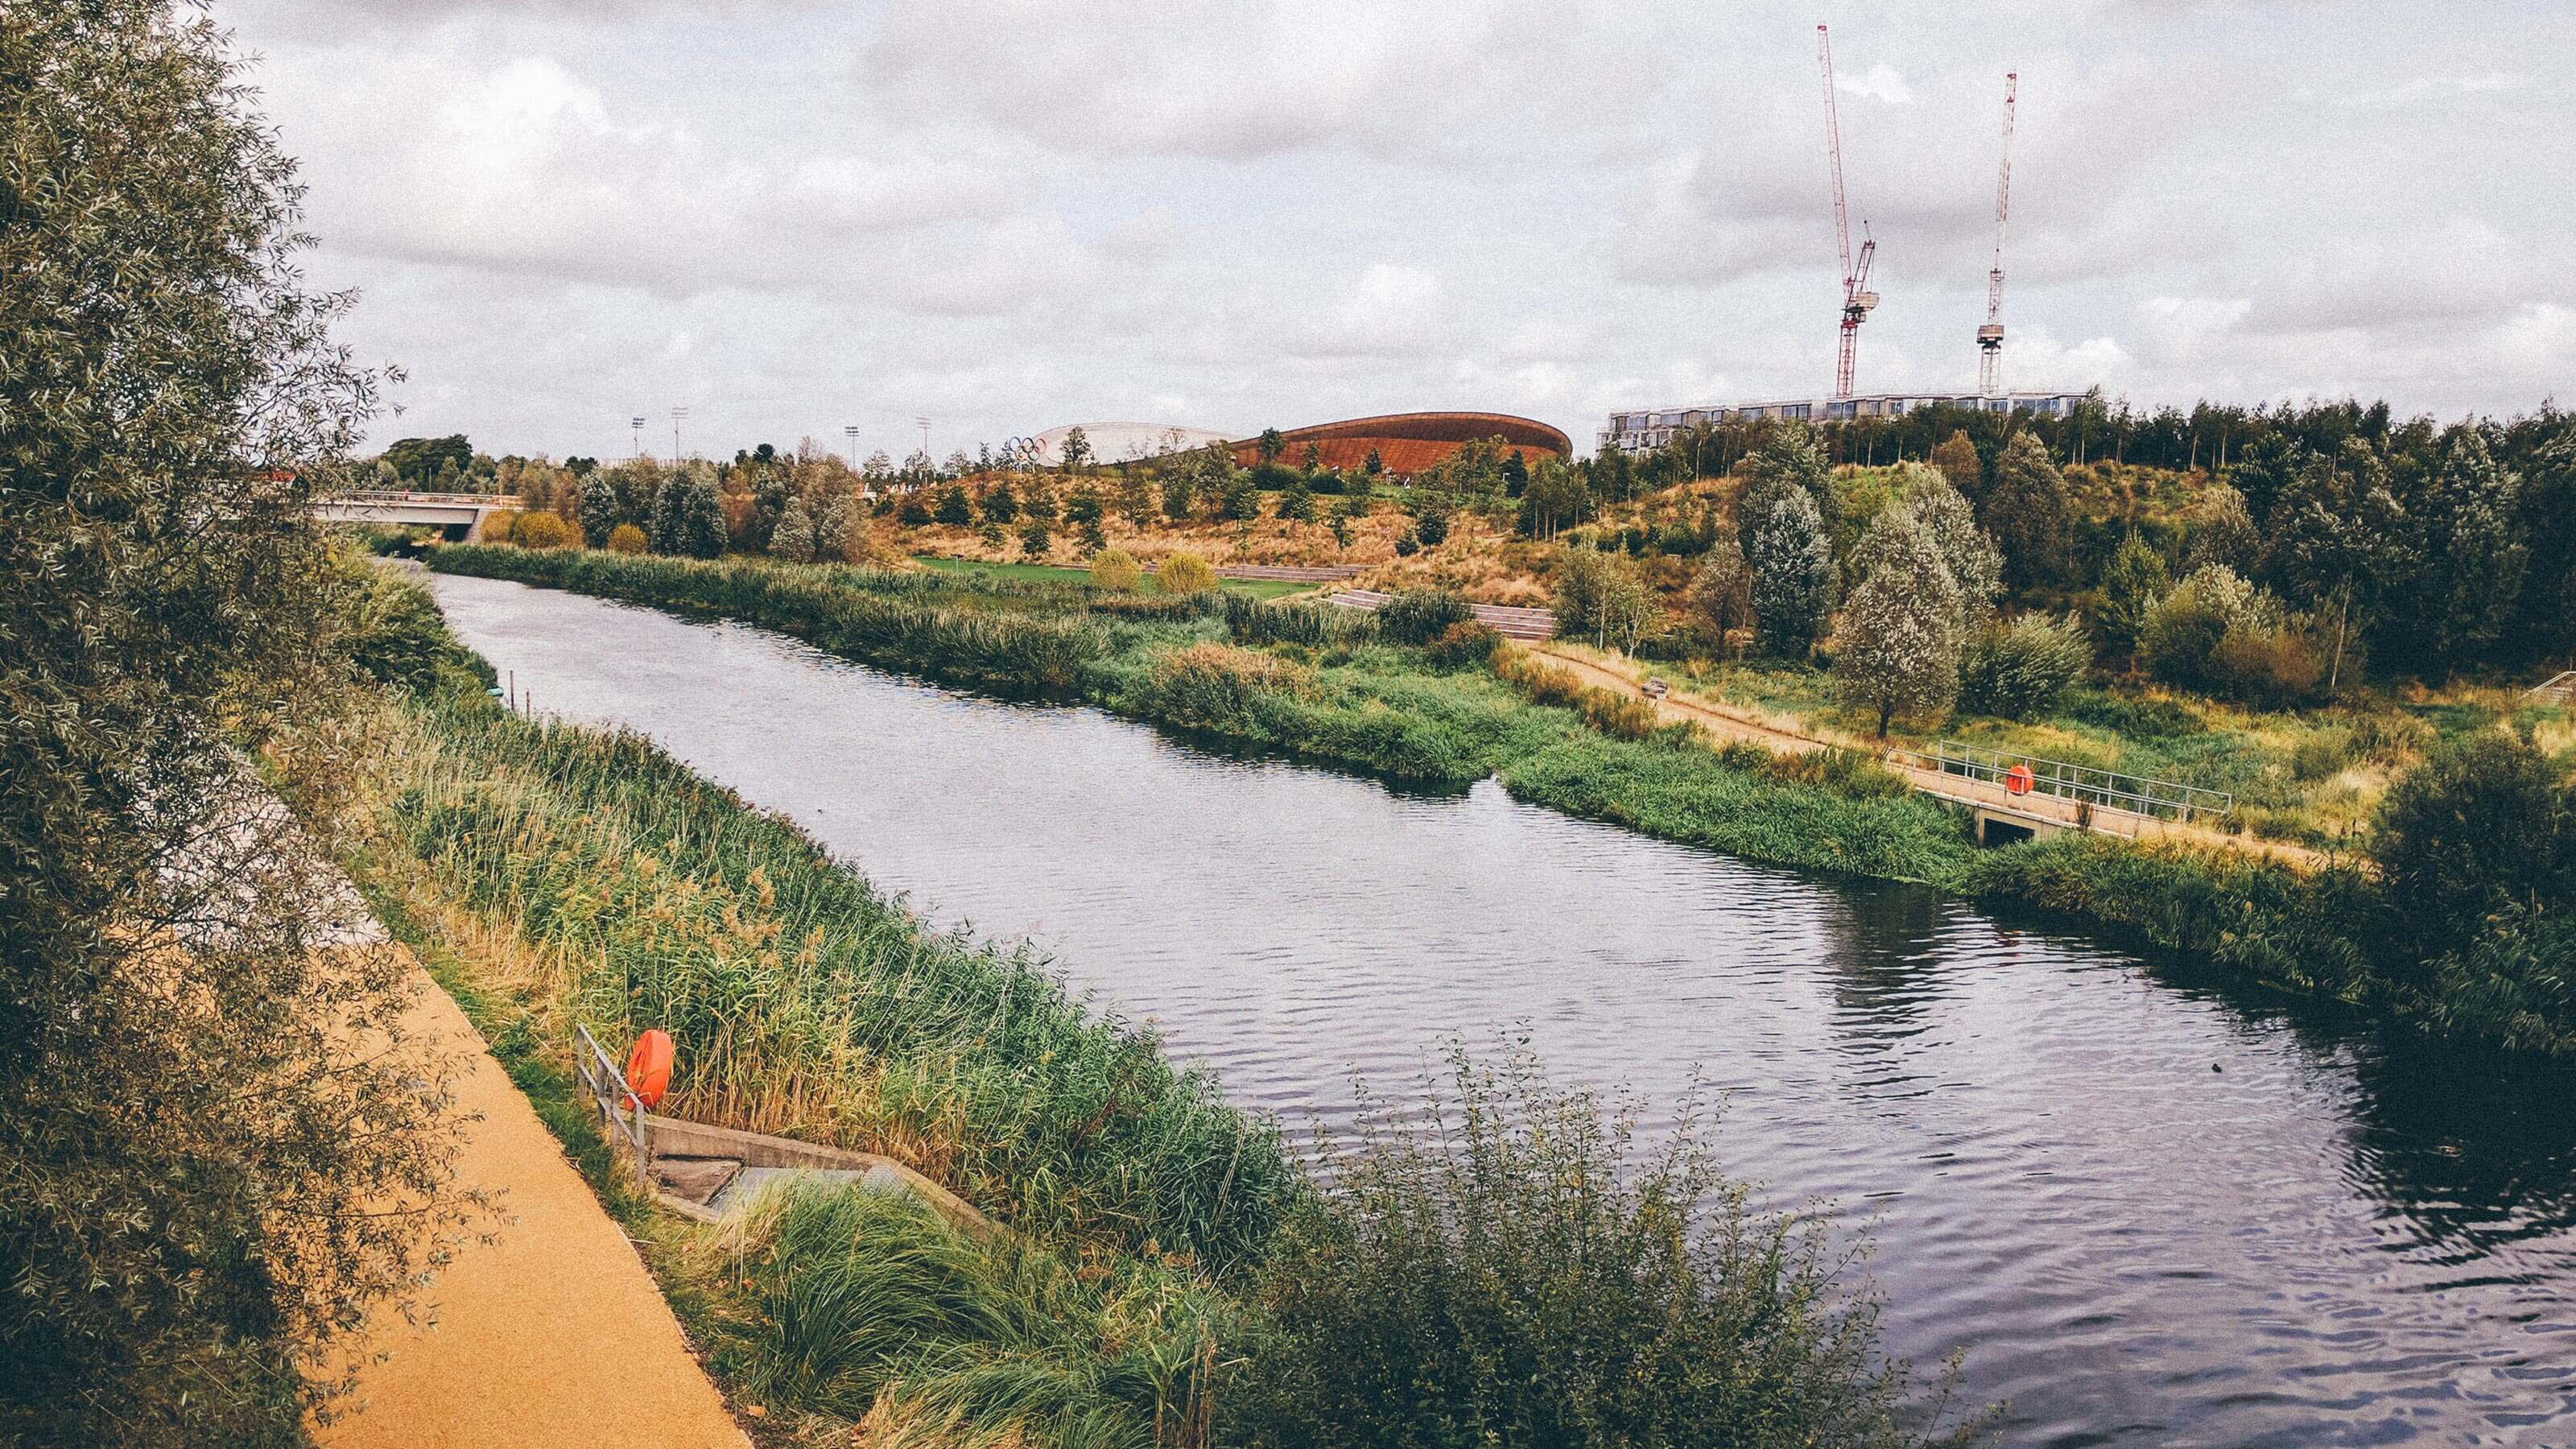 Queen Elizabeth Olympic Park with the Velodrome in the distance